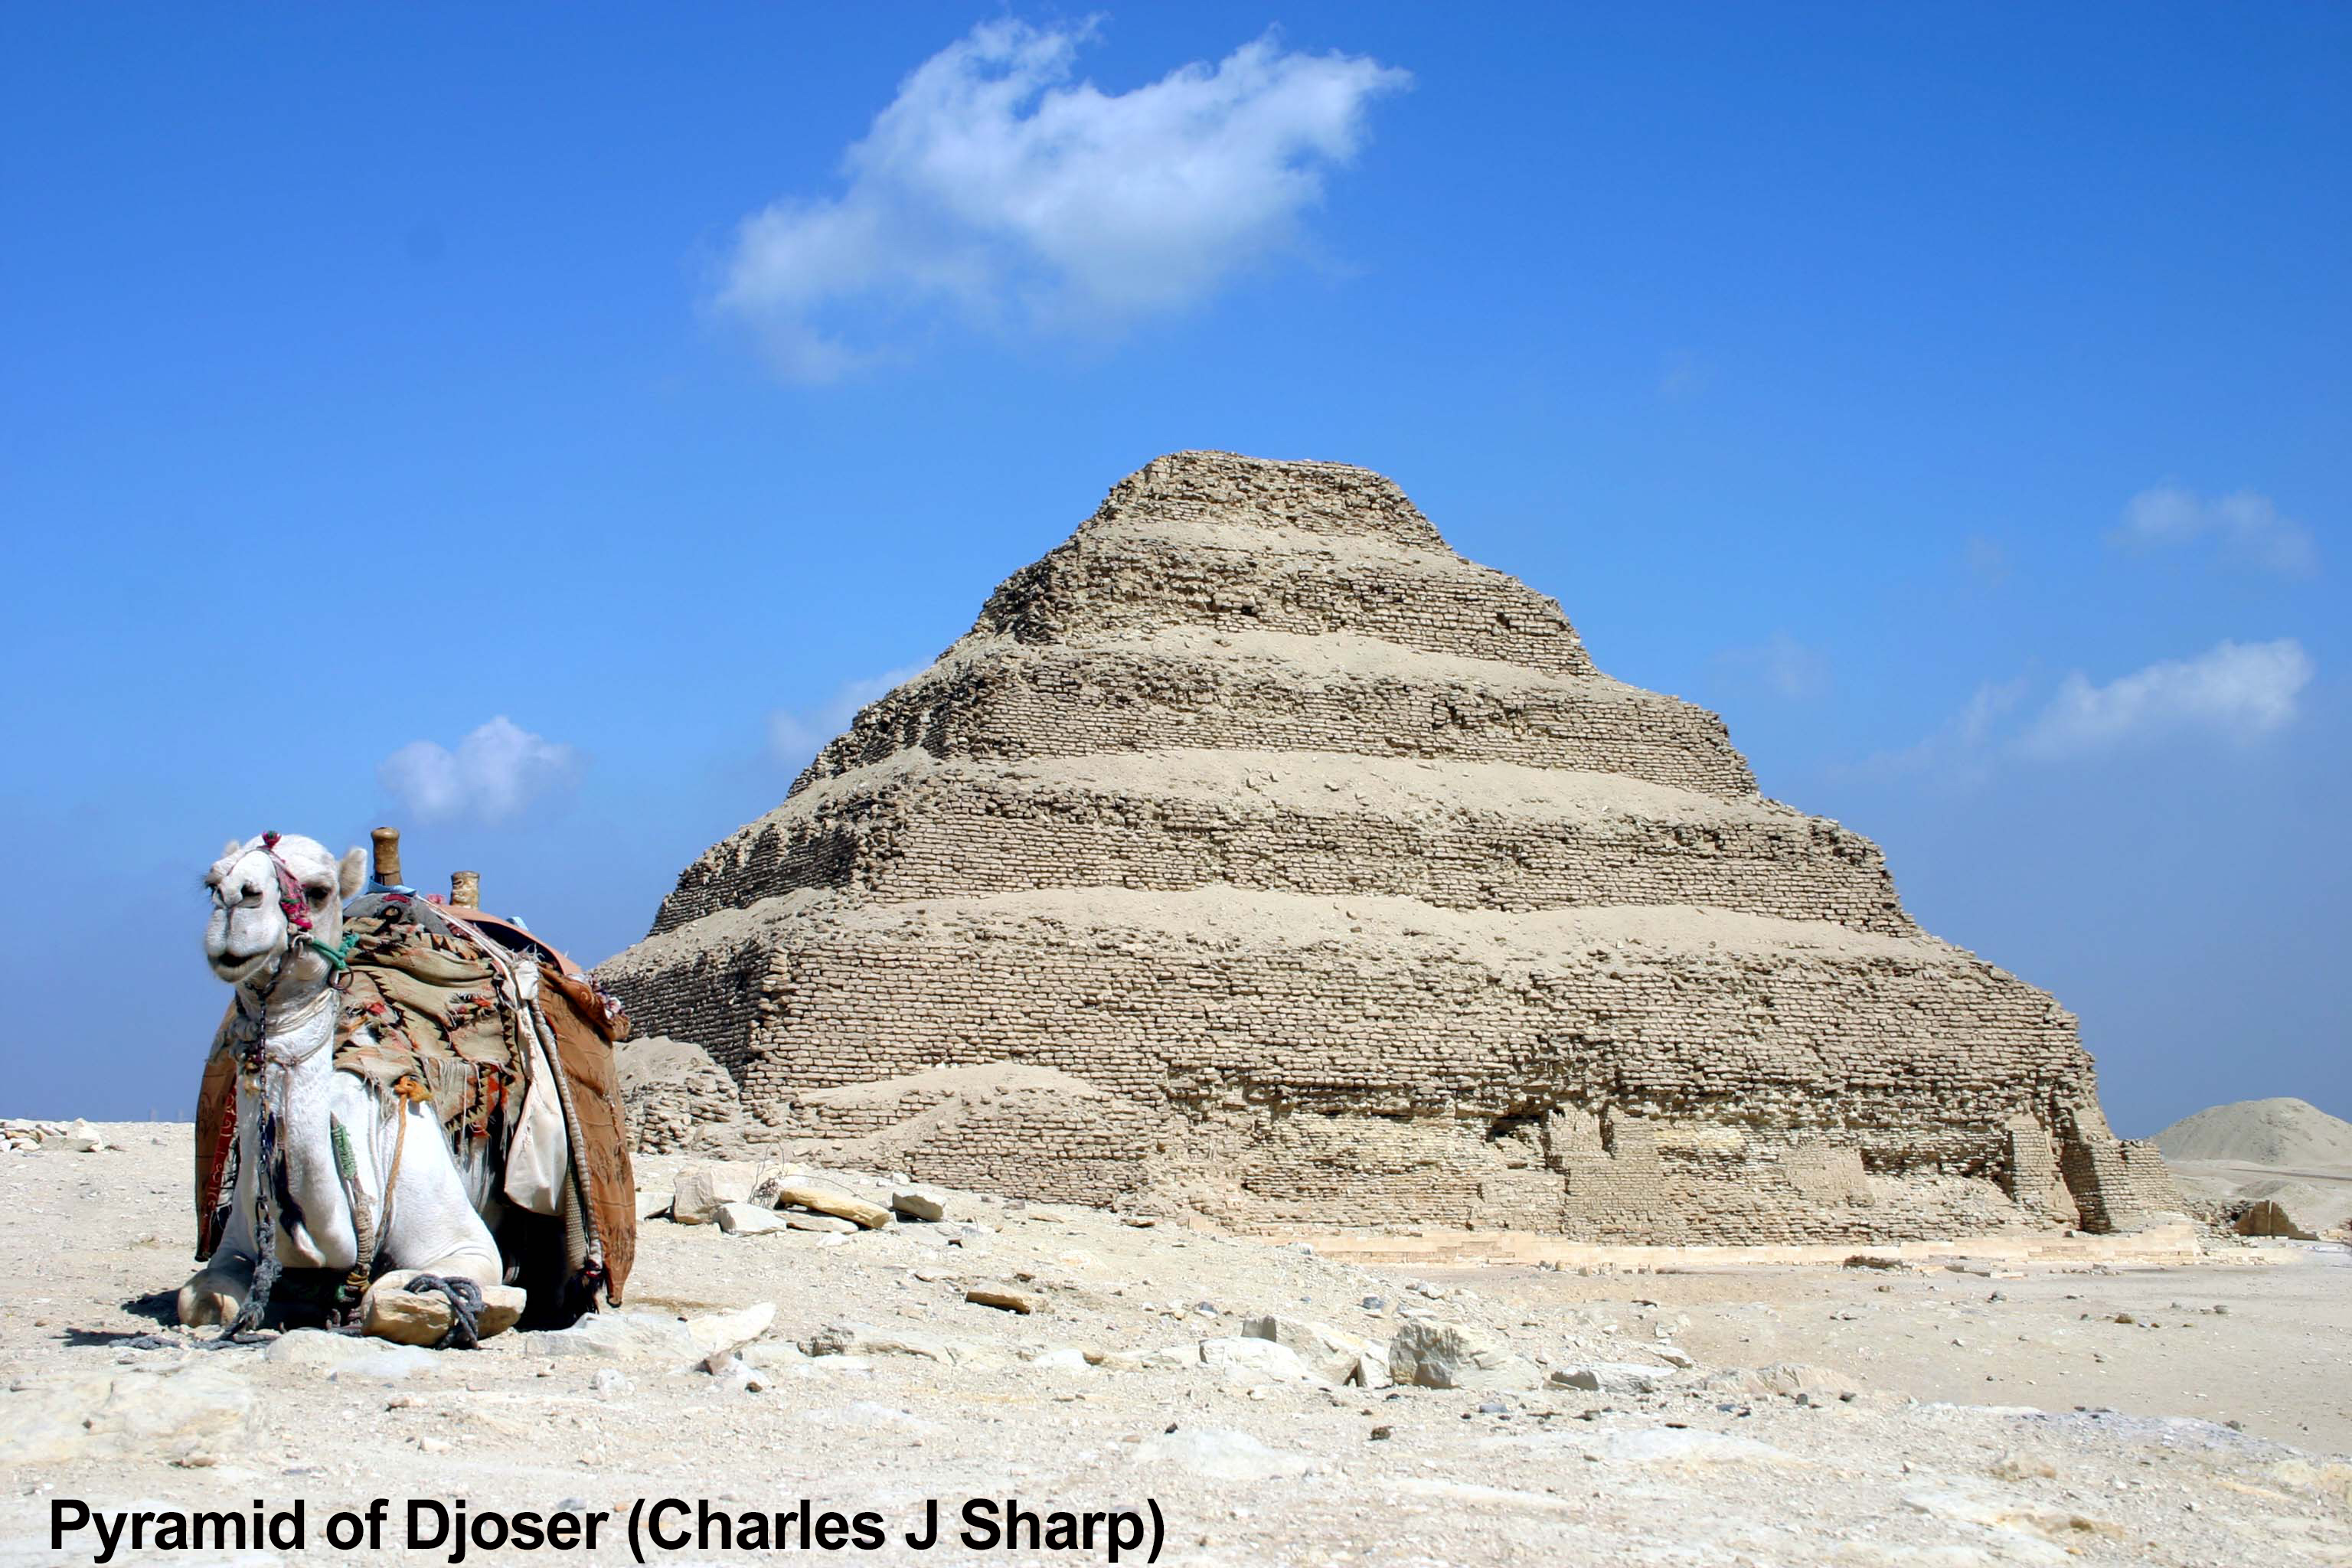 Pyramid of Djoser (credit to Charles J Sharp)